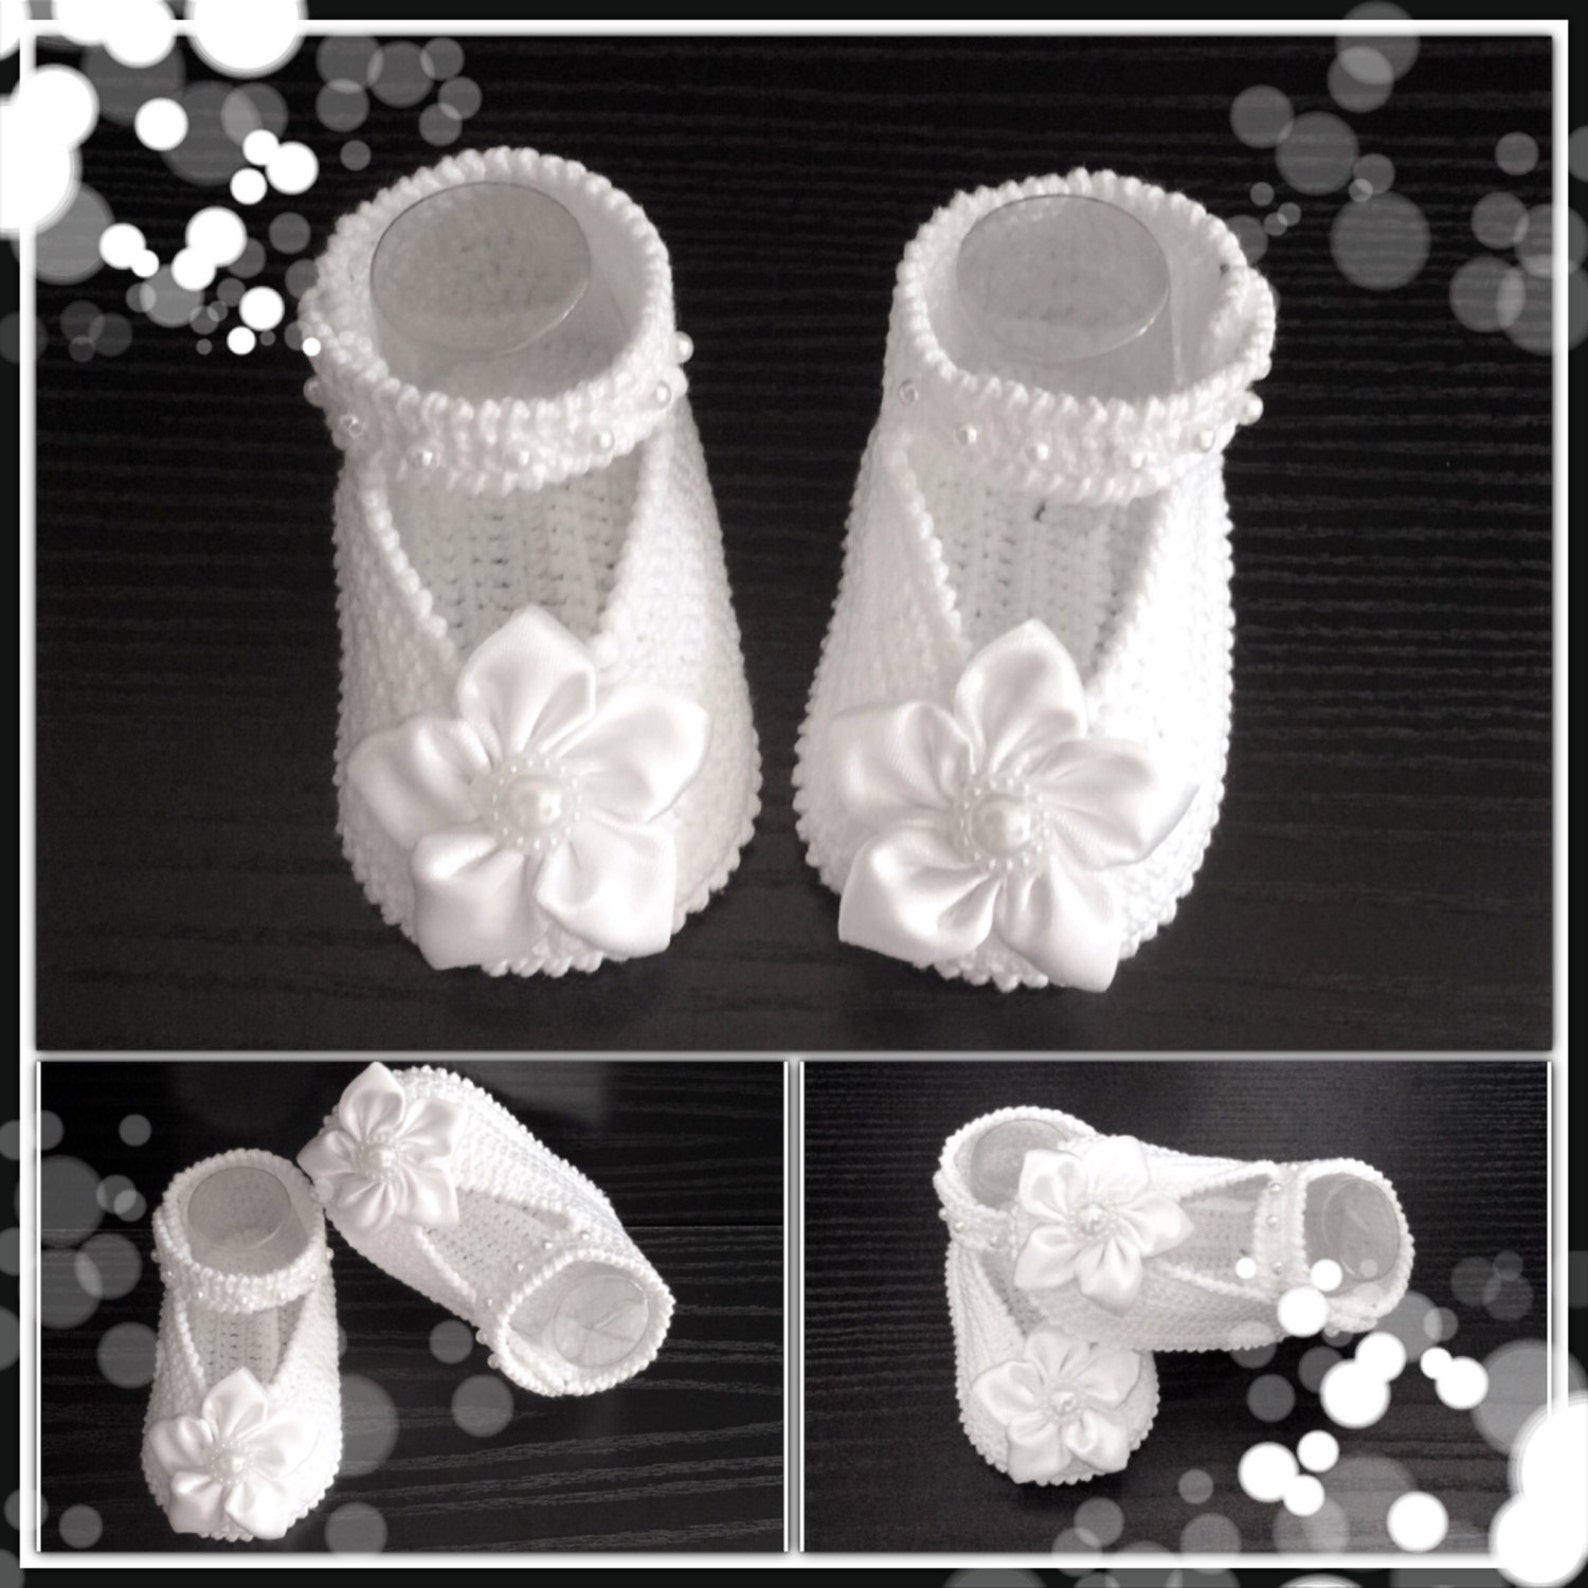 baptism shoes.crochet baby ballet slippers.white satin crib shoes.hand crocheted mary jane booties with satin flowers. baby ball